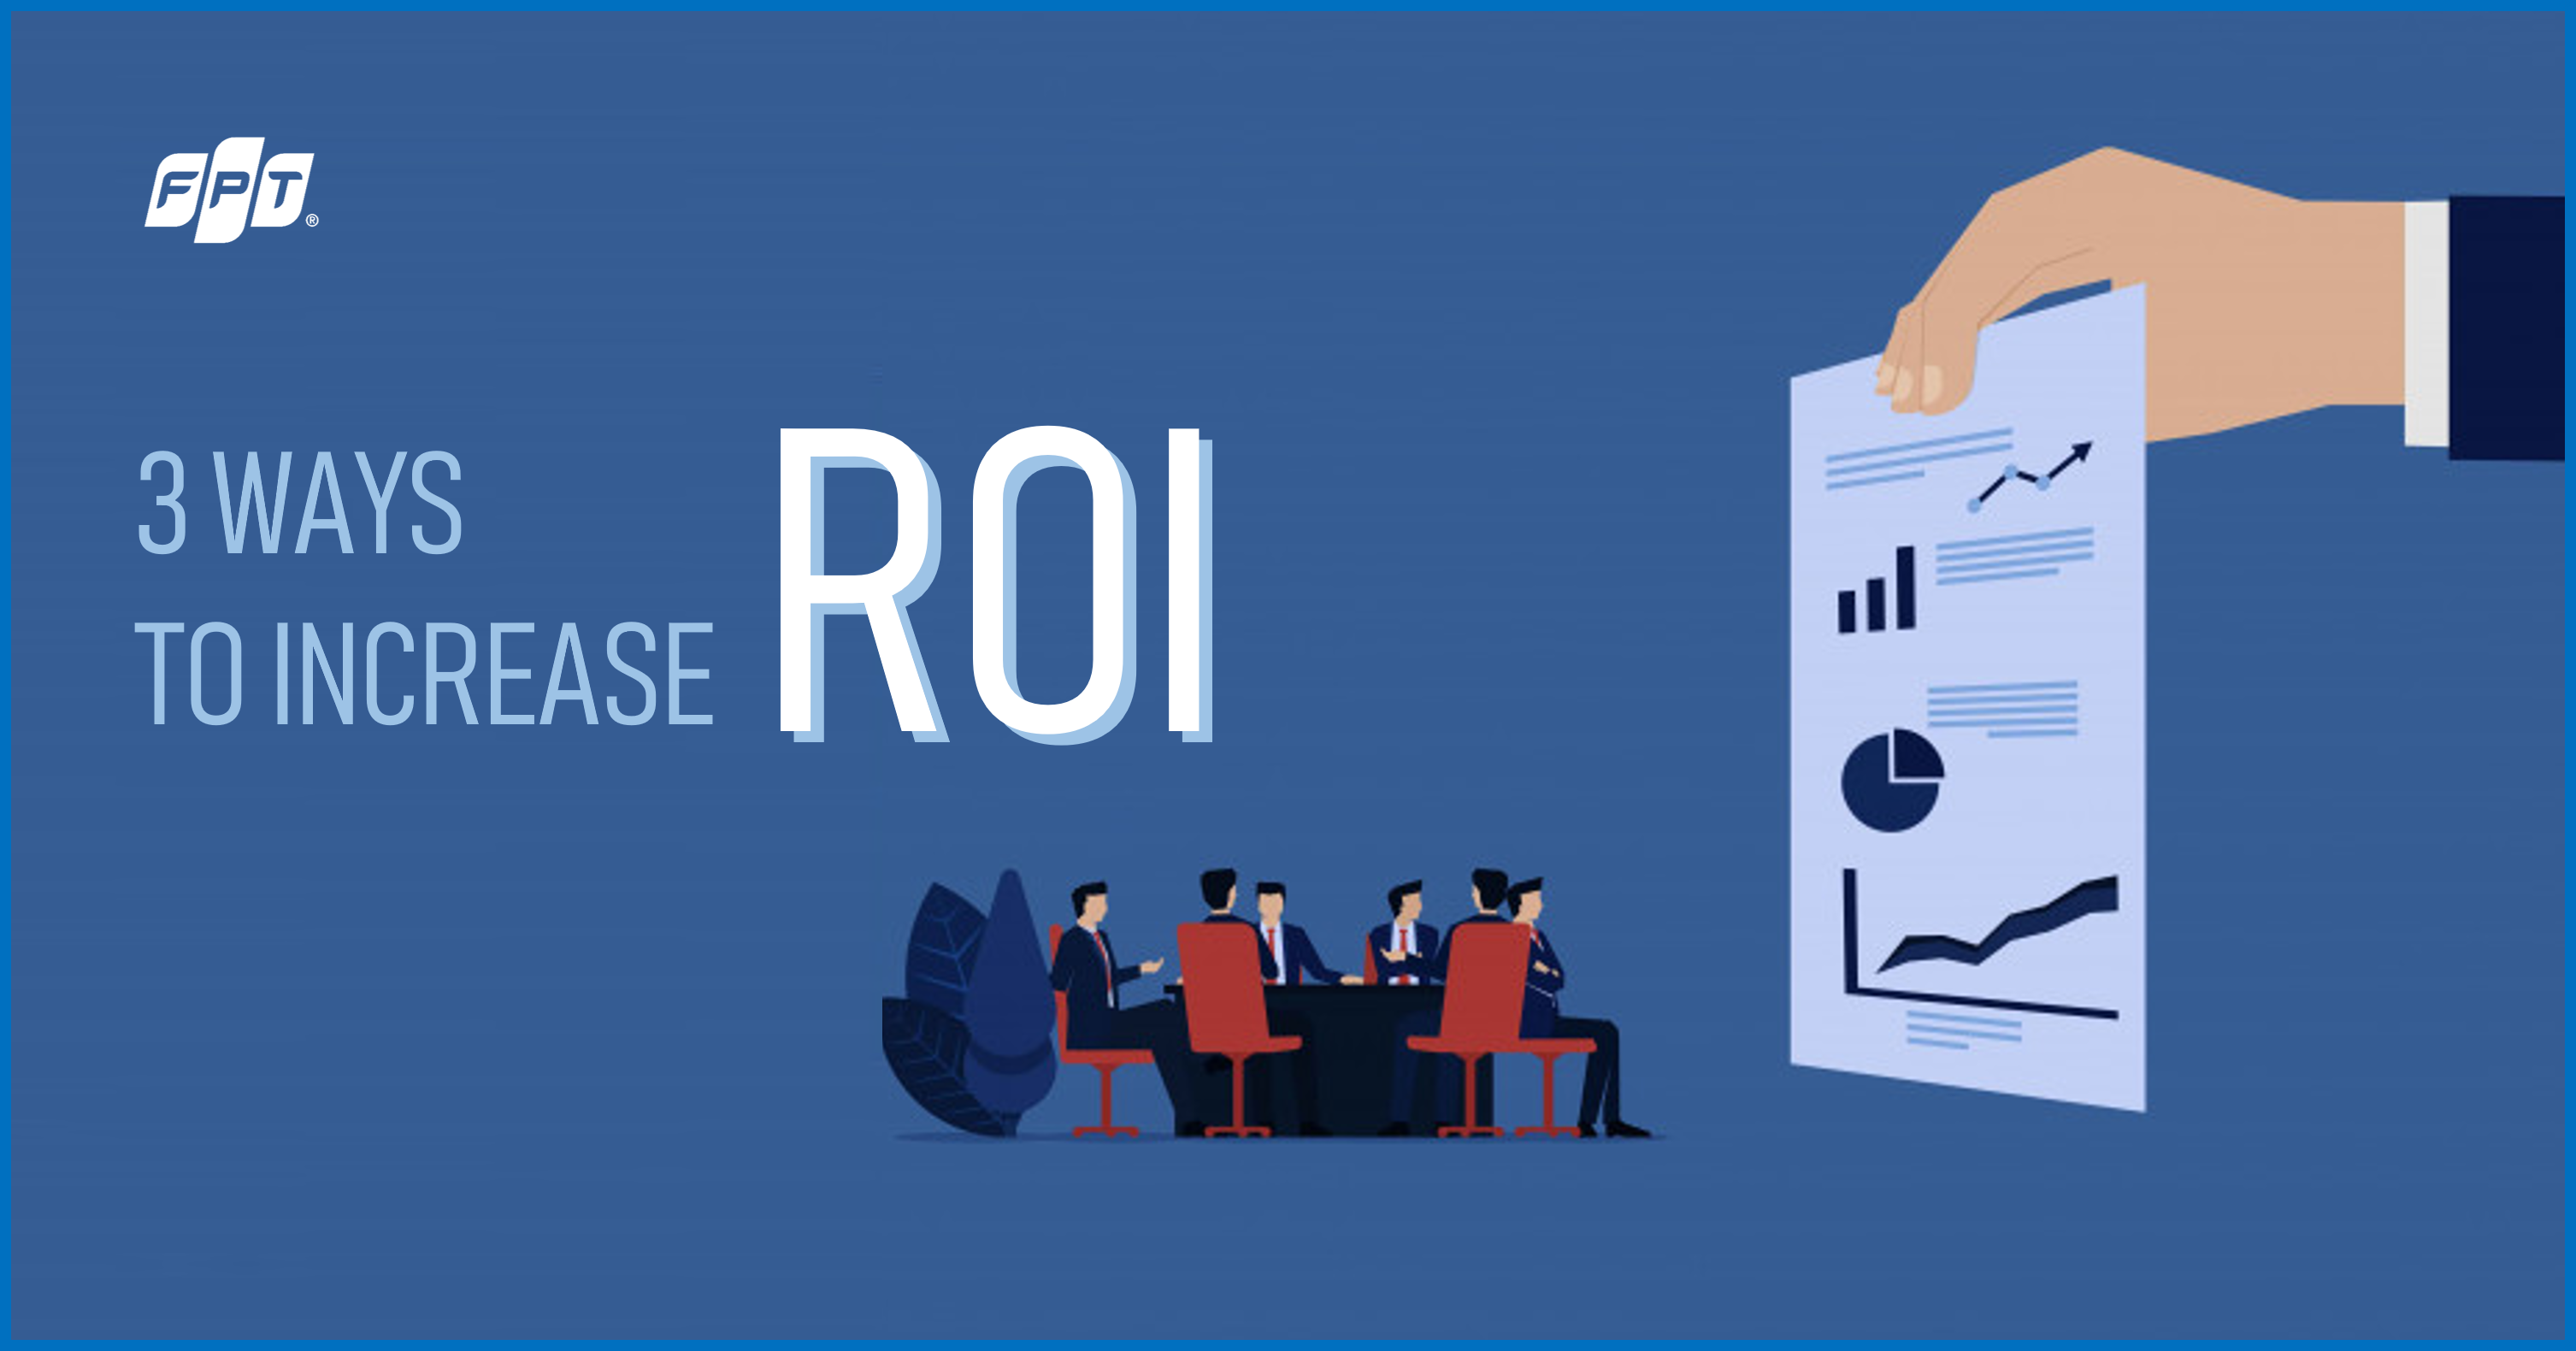 Effortless ways to increase ROI for your business success